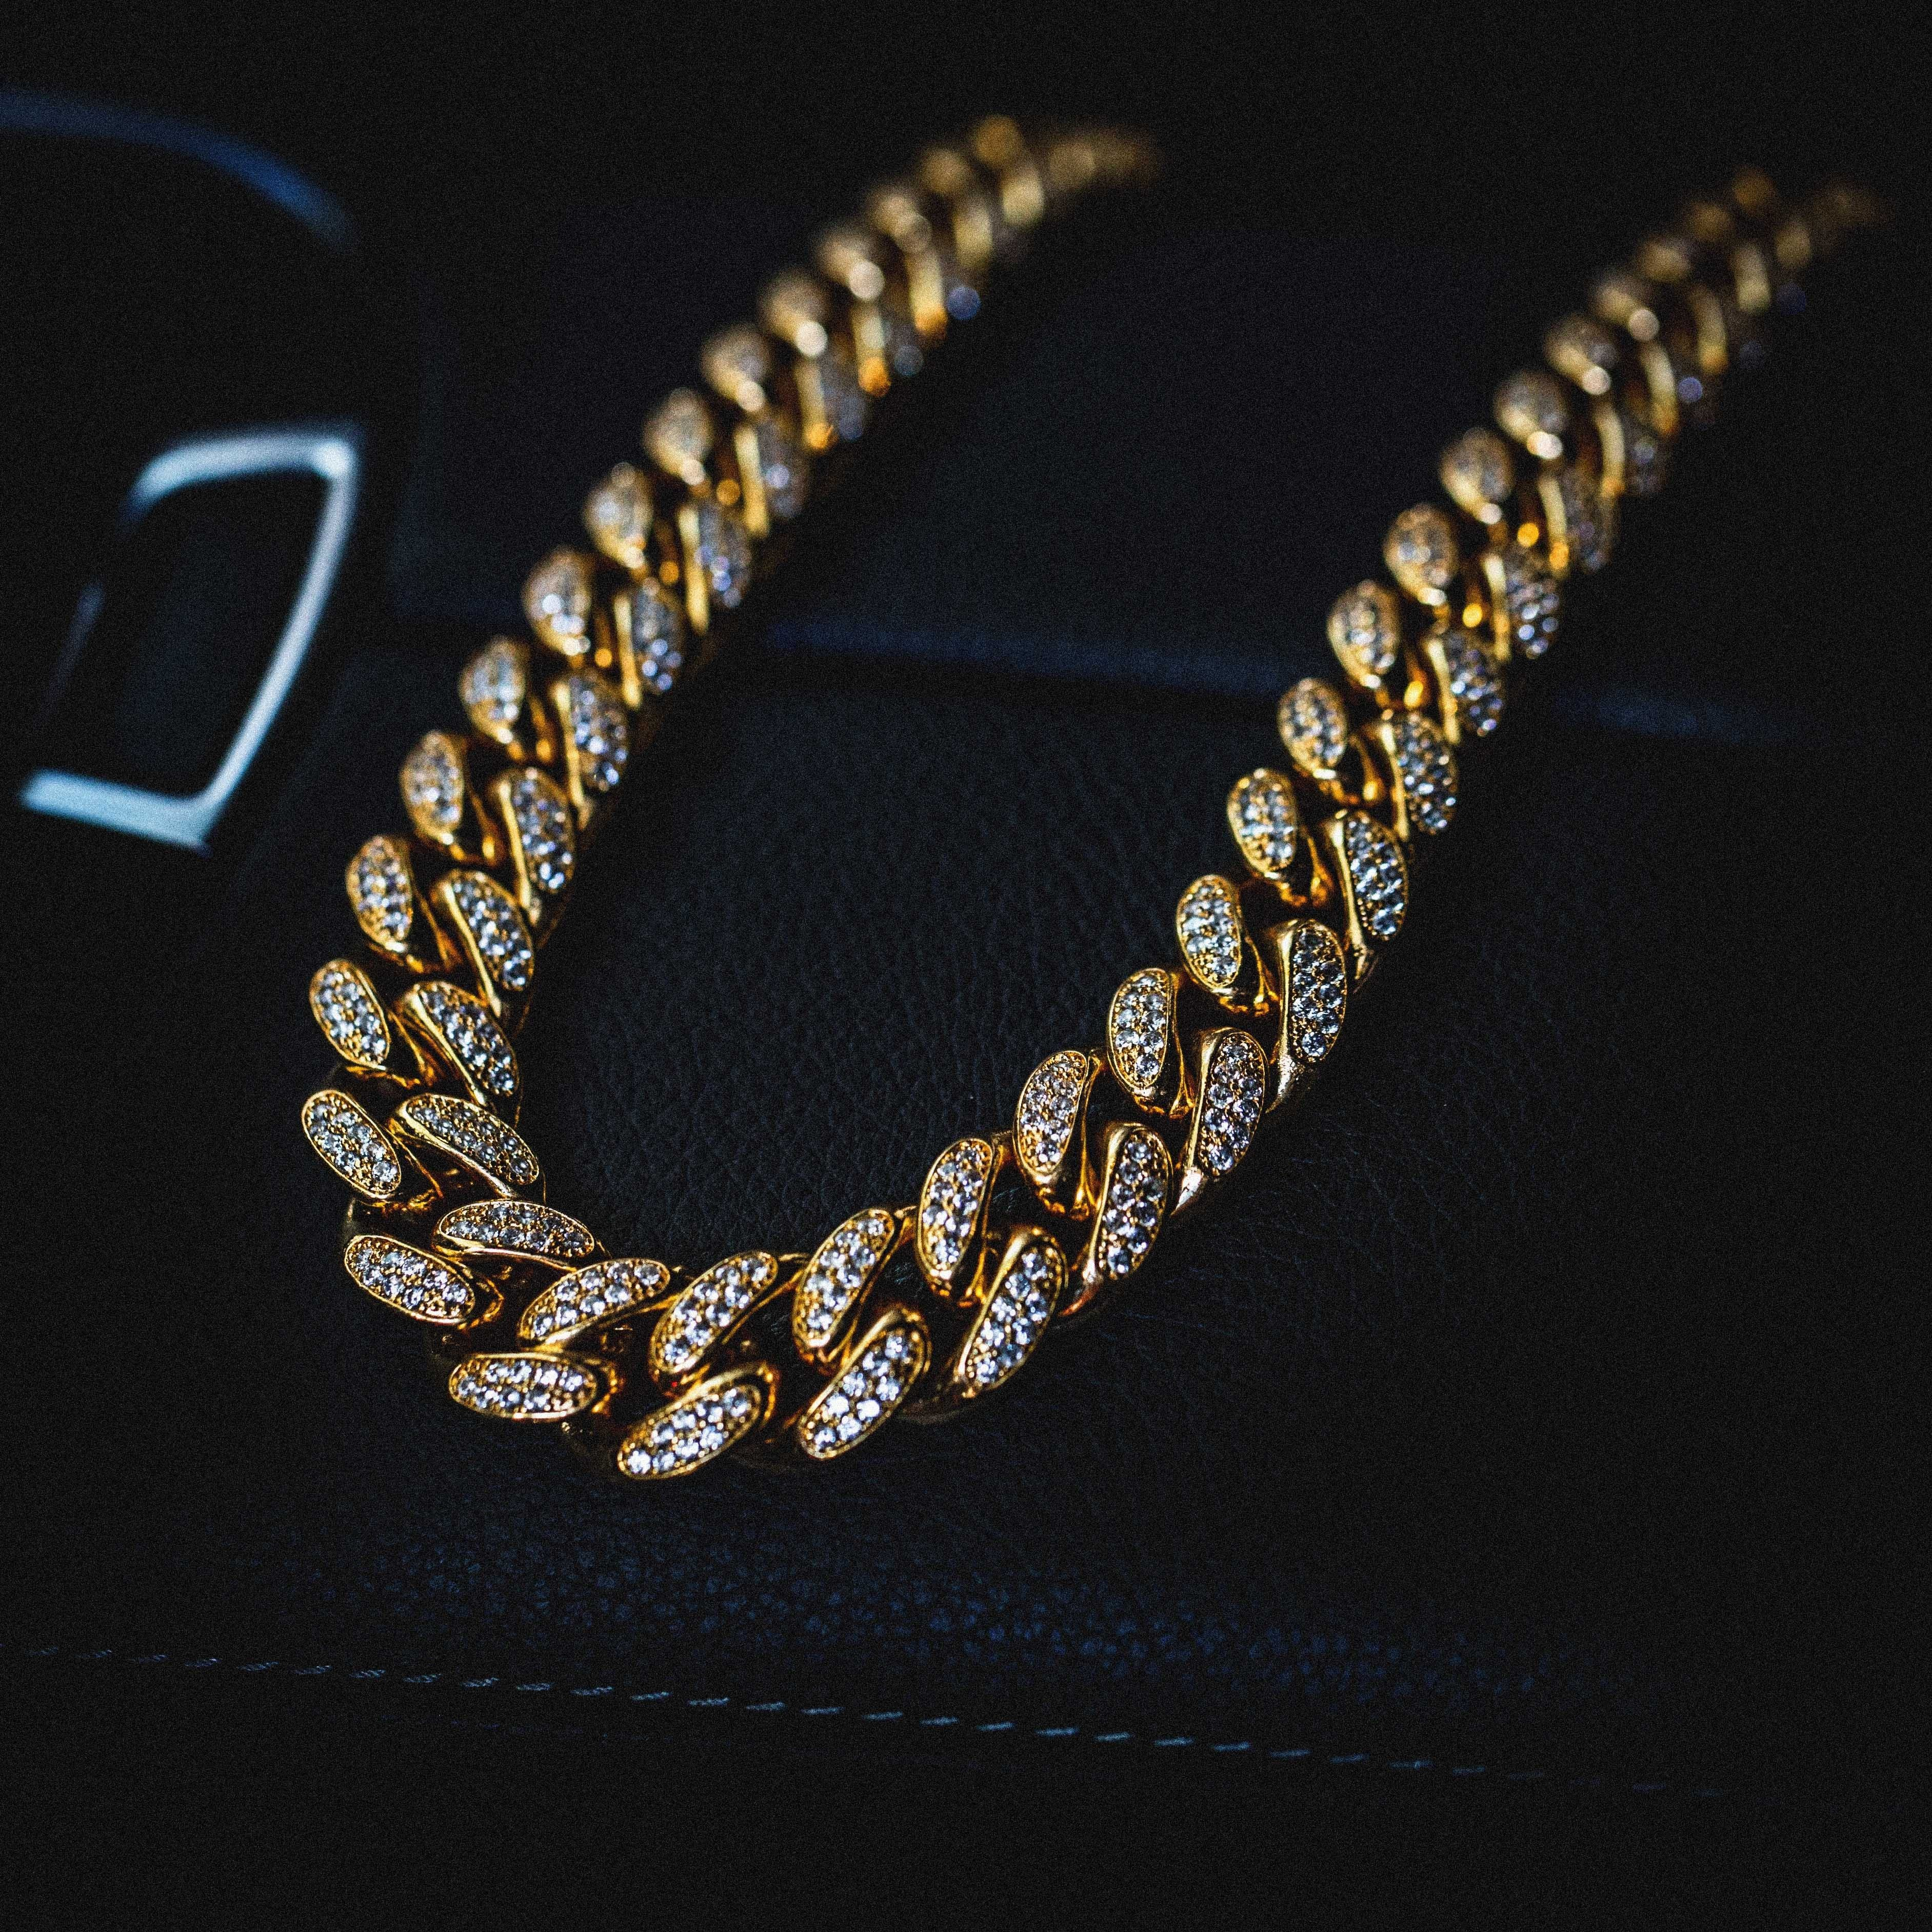 Diamond Cuban Link Necklace 19mm In Yellow Gold The